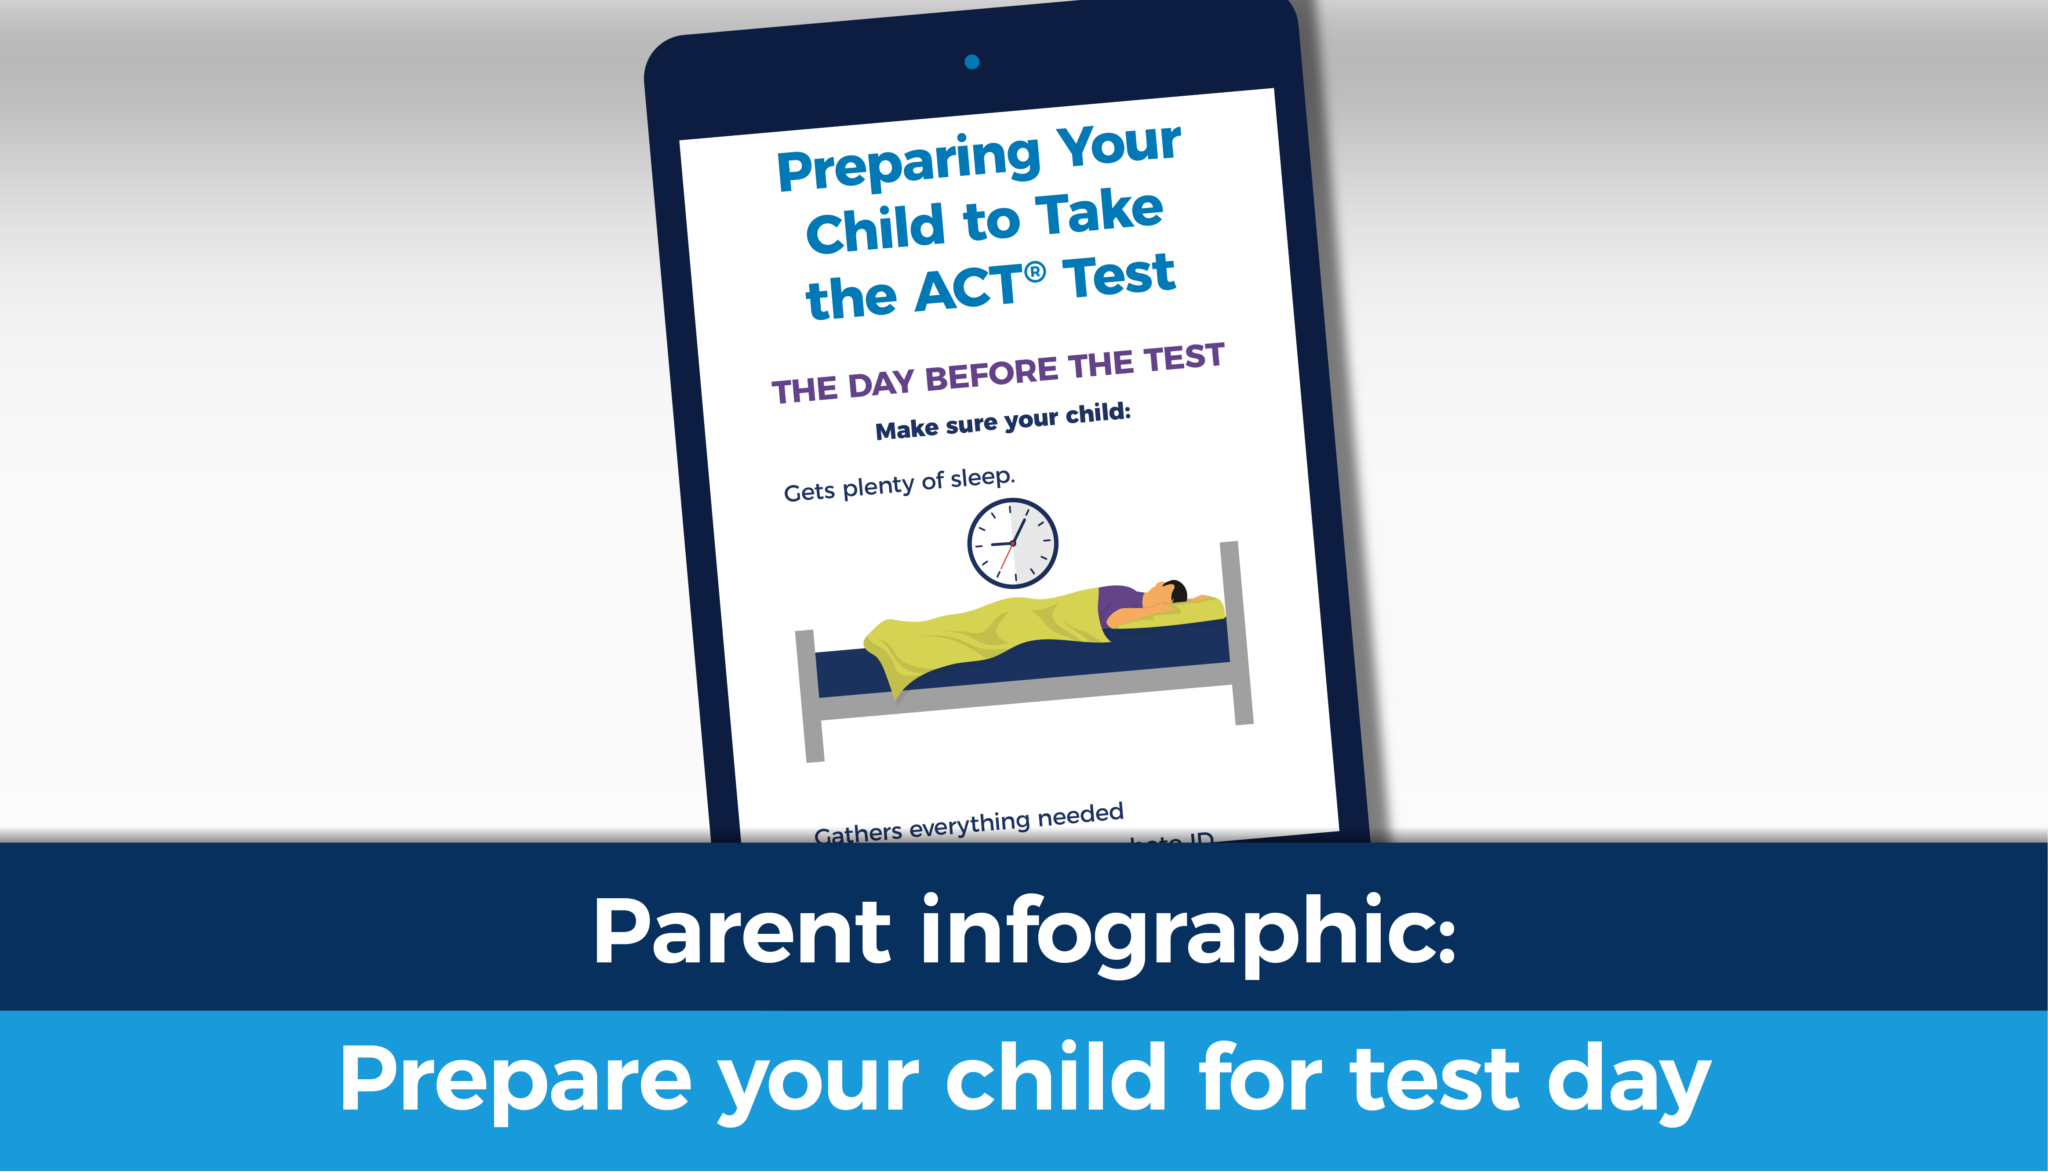 Preparing your child to take the ACT test